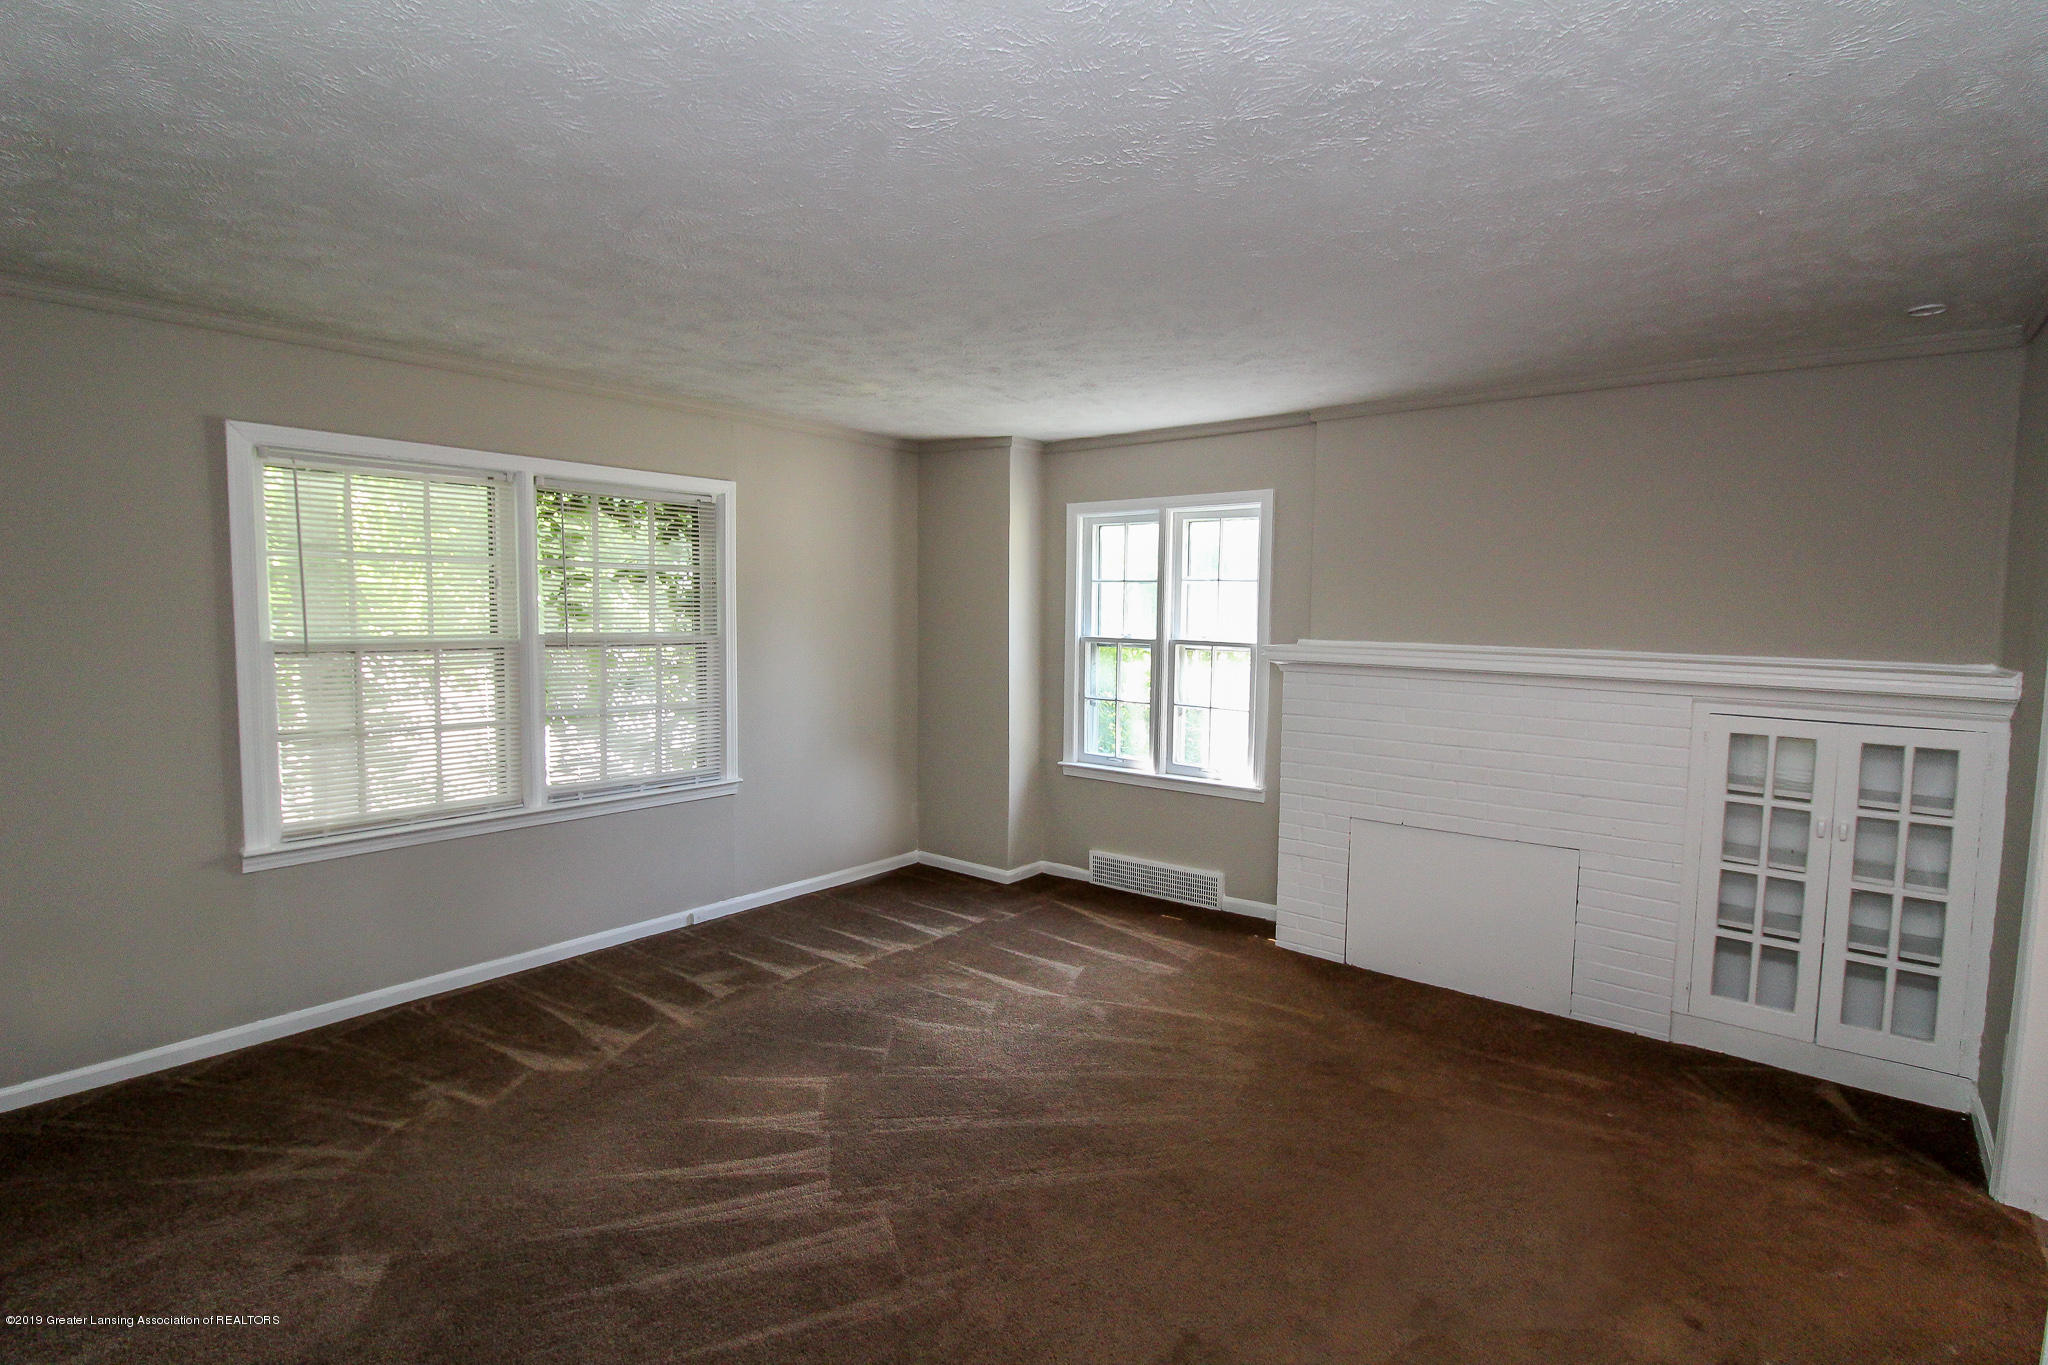 124 Northlawn Ave - 5 Living Room 1 - 2